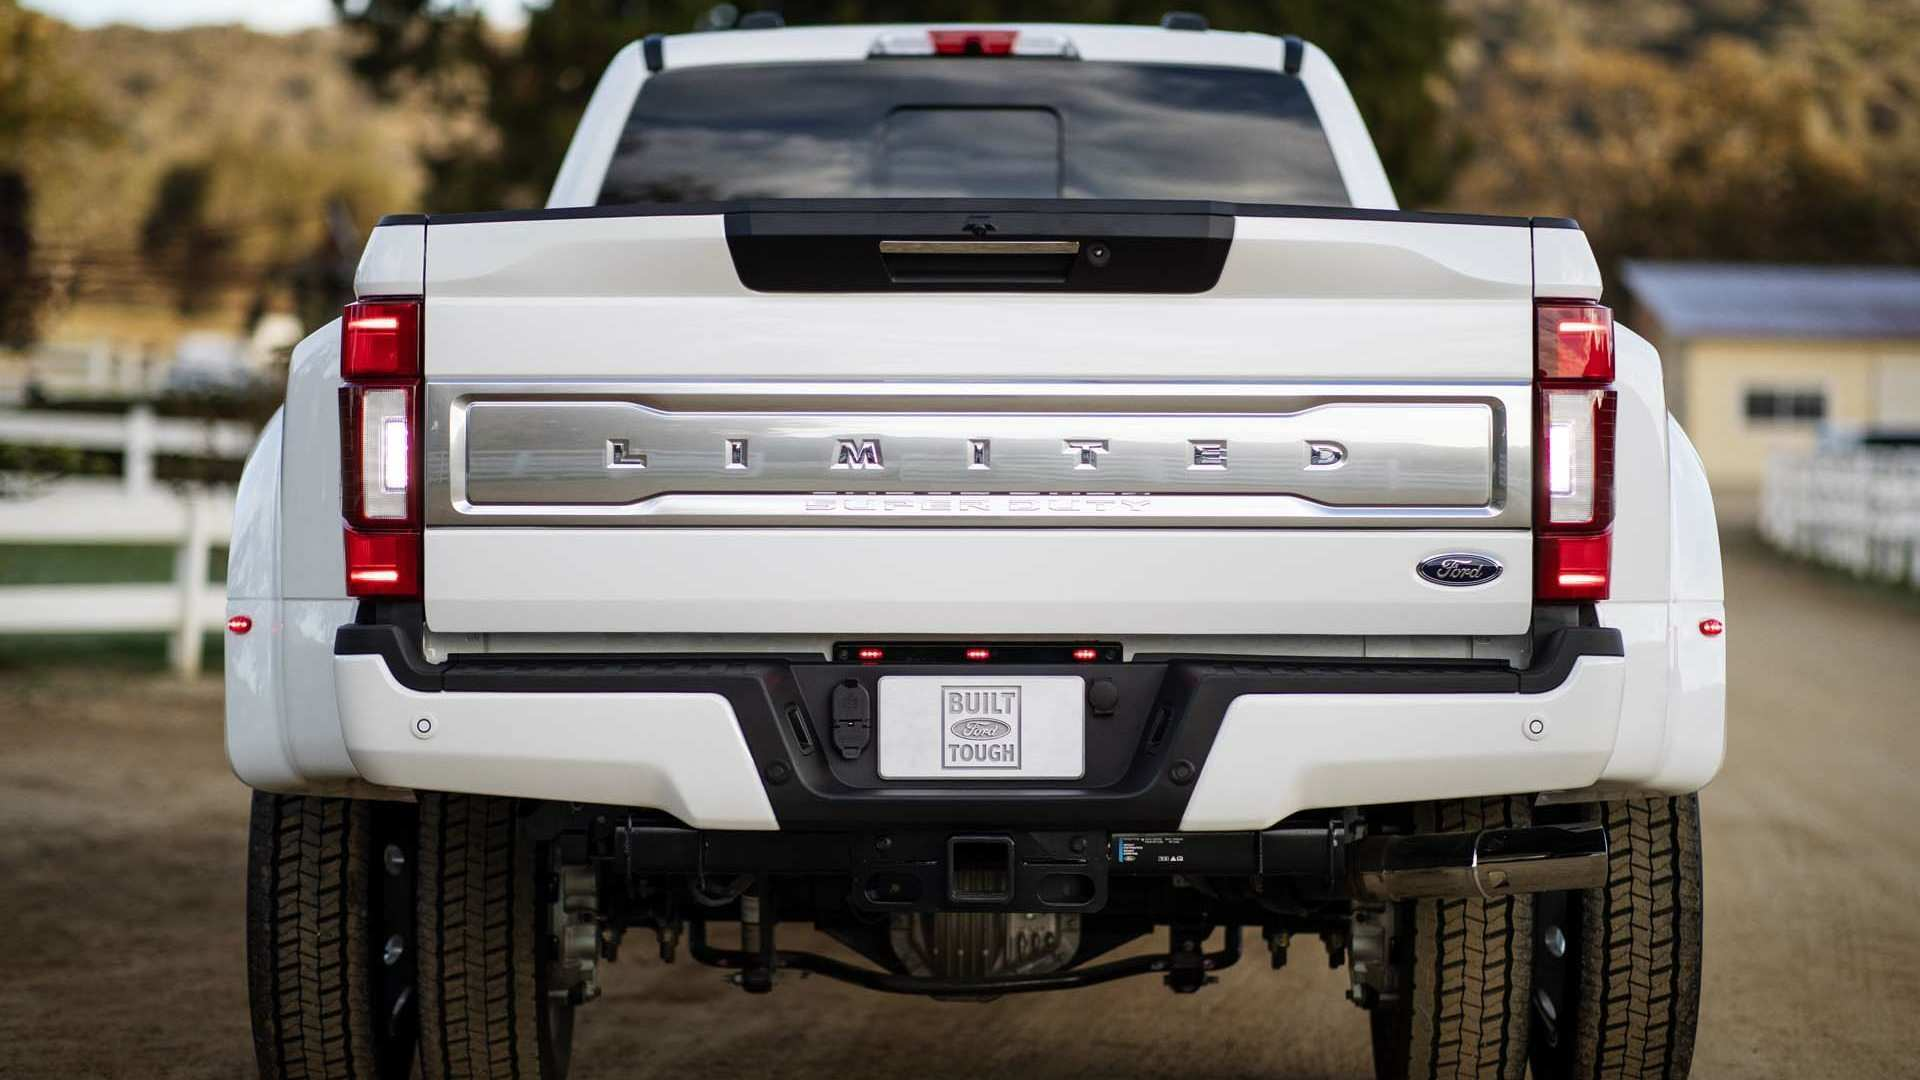 92 The 2020 Ford F450 Super Duty Price Design And Review